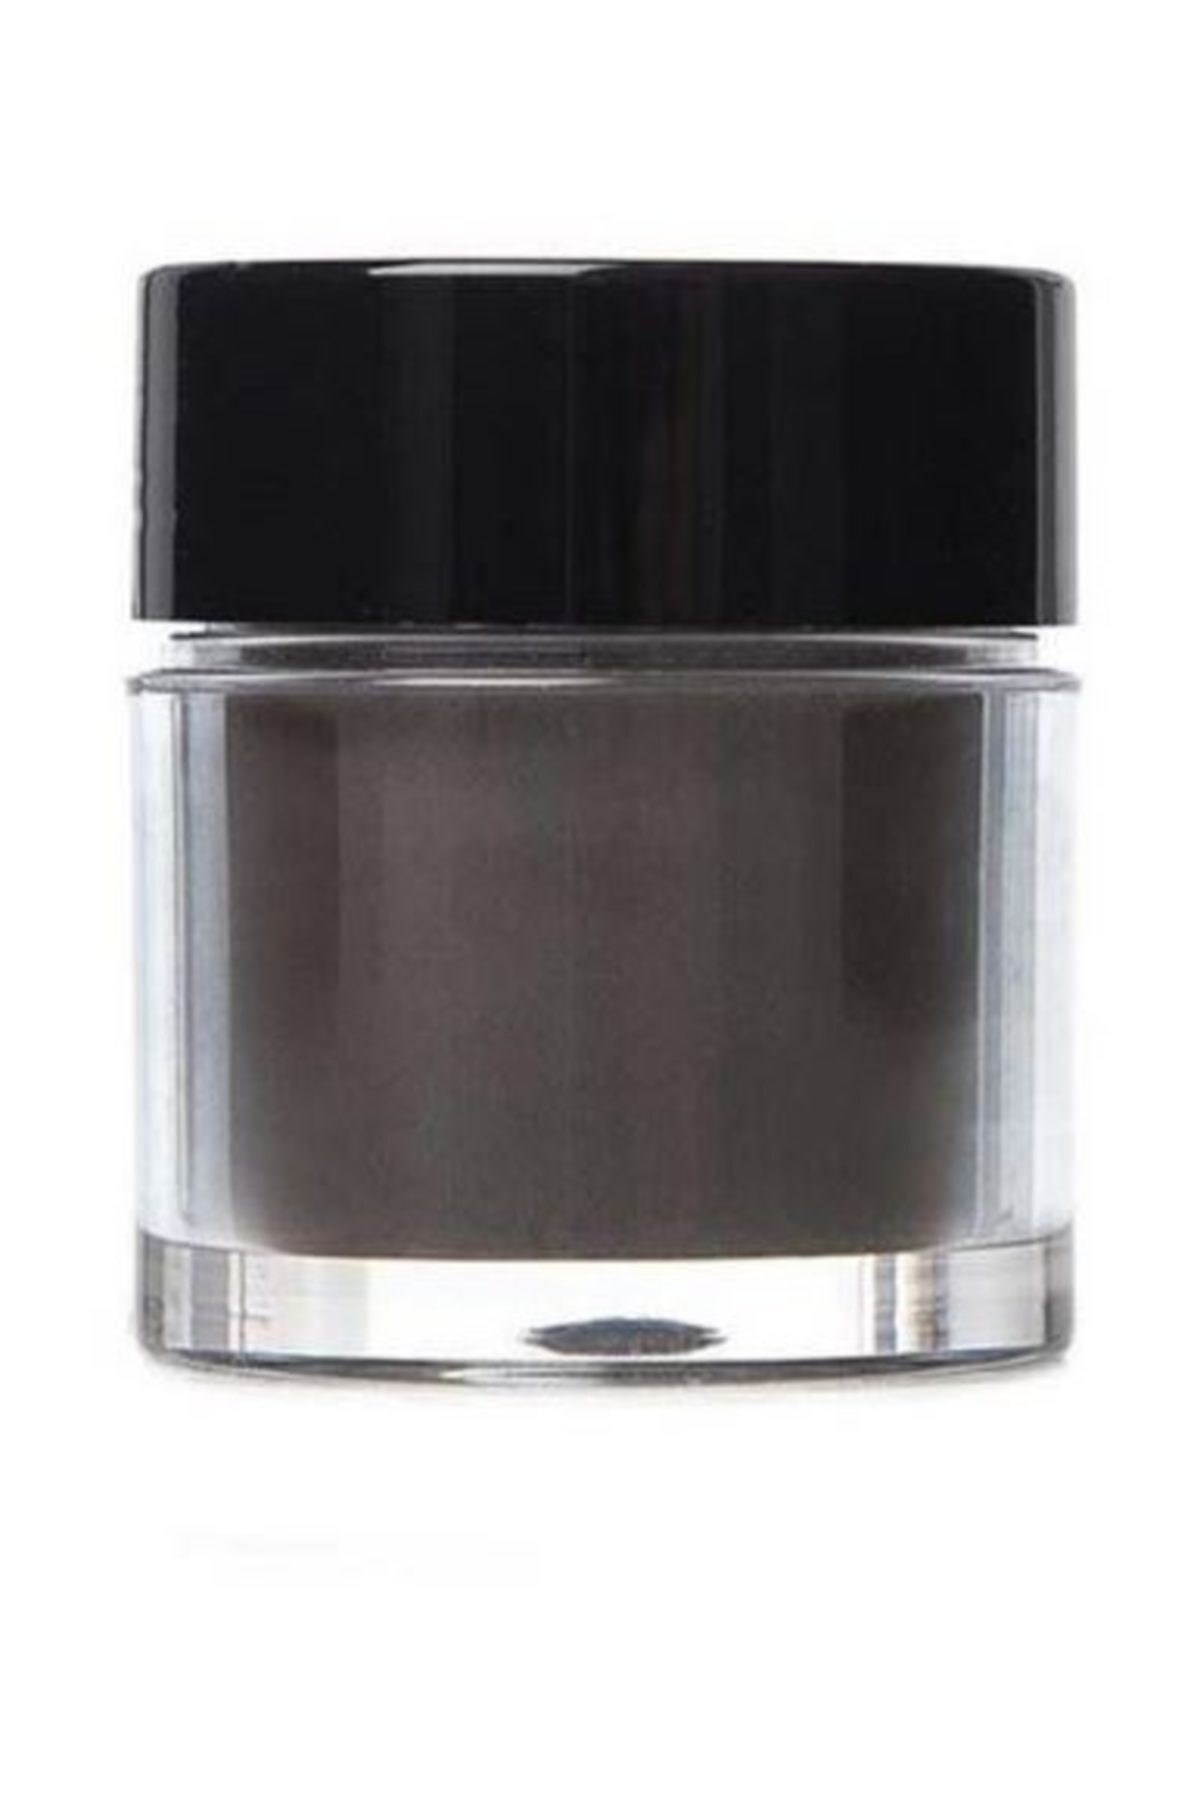 Young Blood Toz Mineral Far - Eyeshadow Raven 696137100197 1